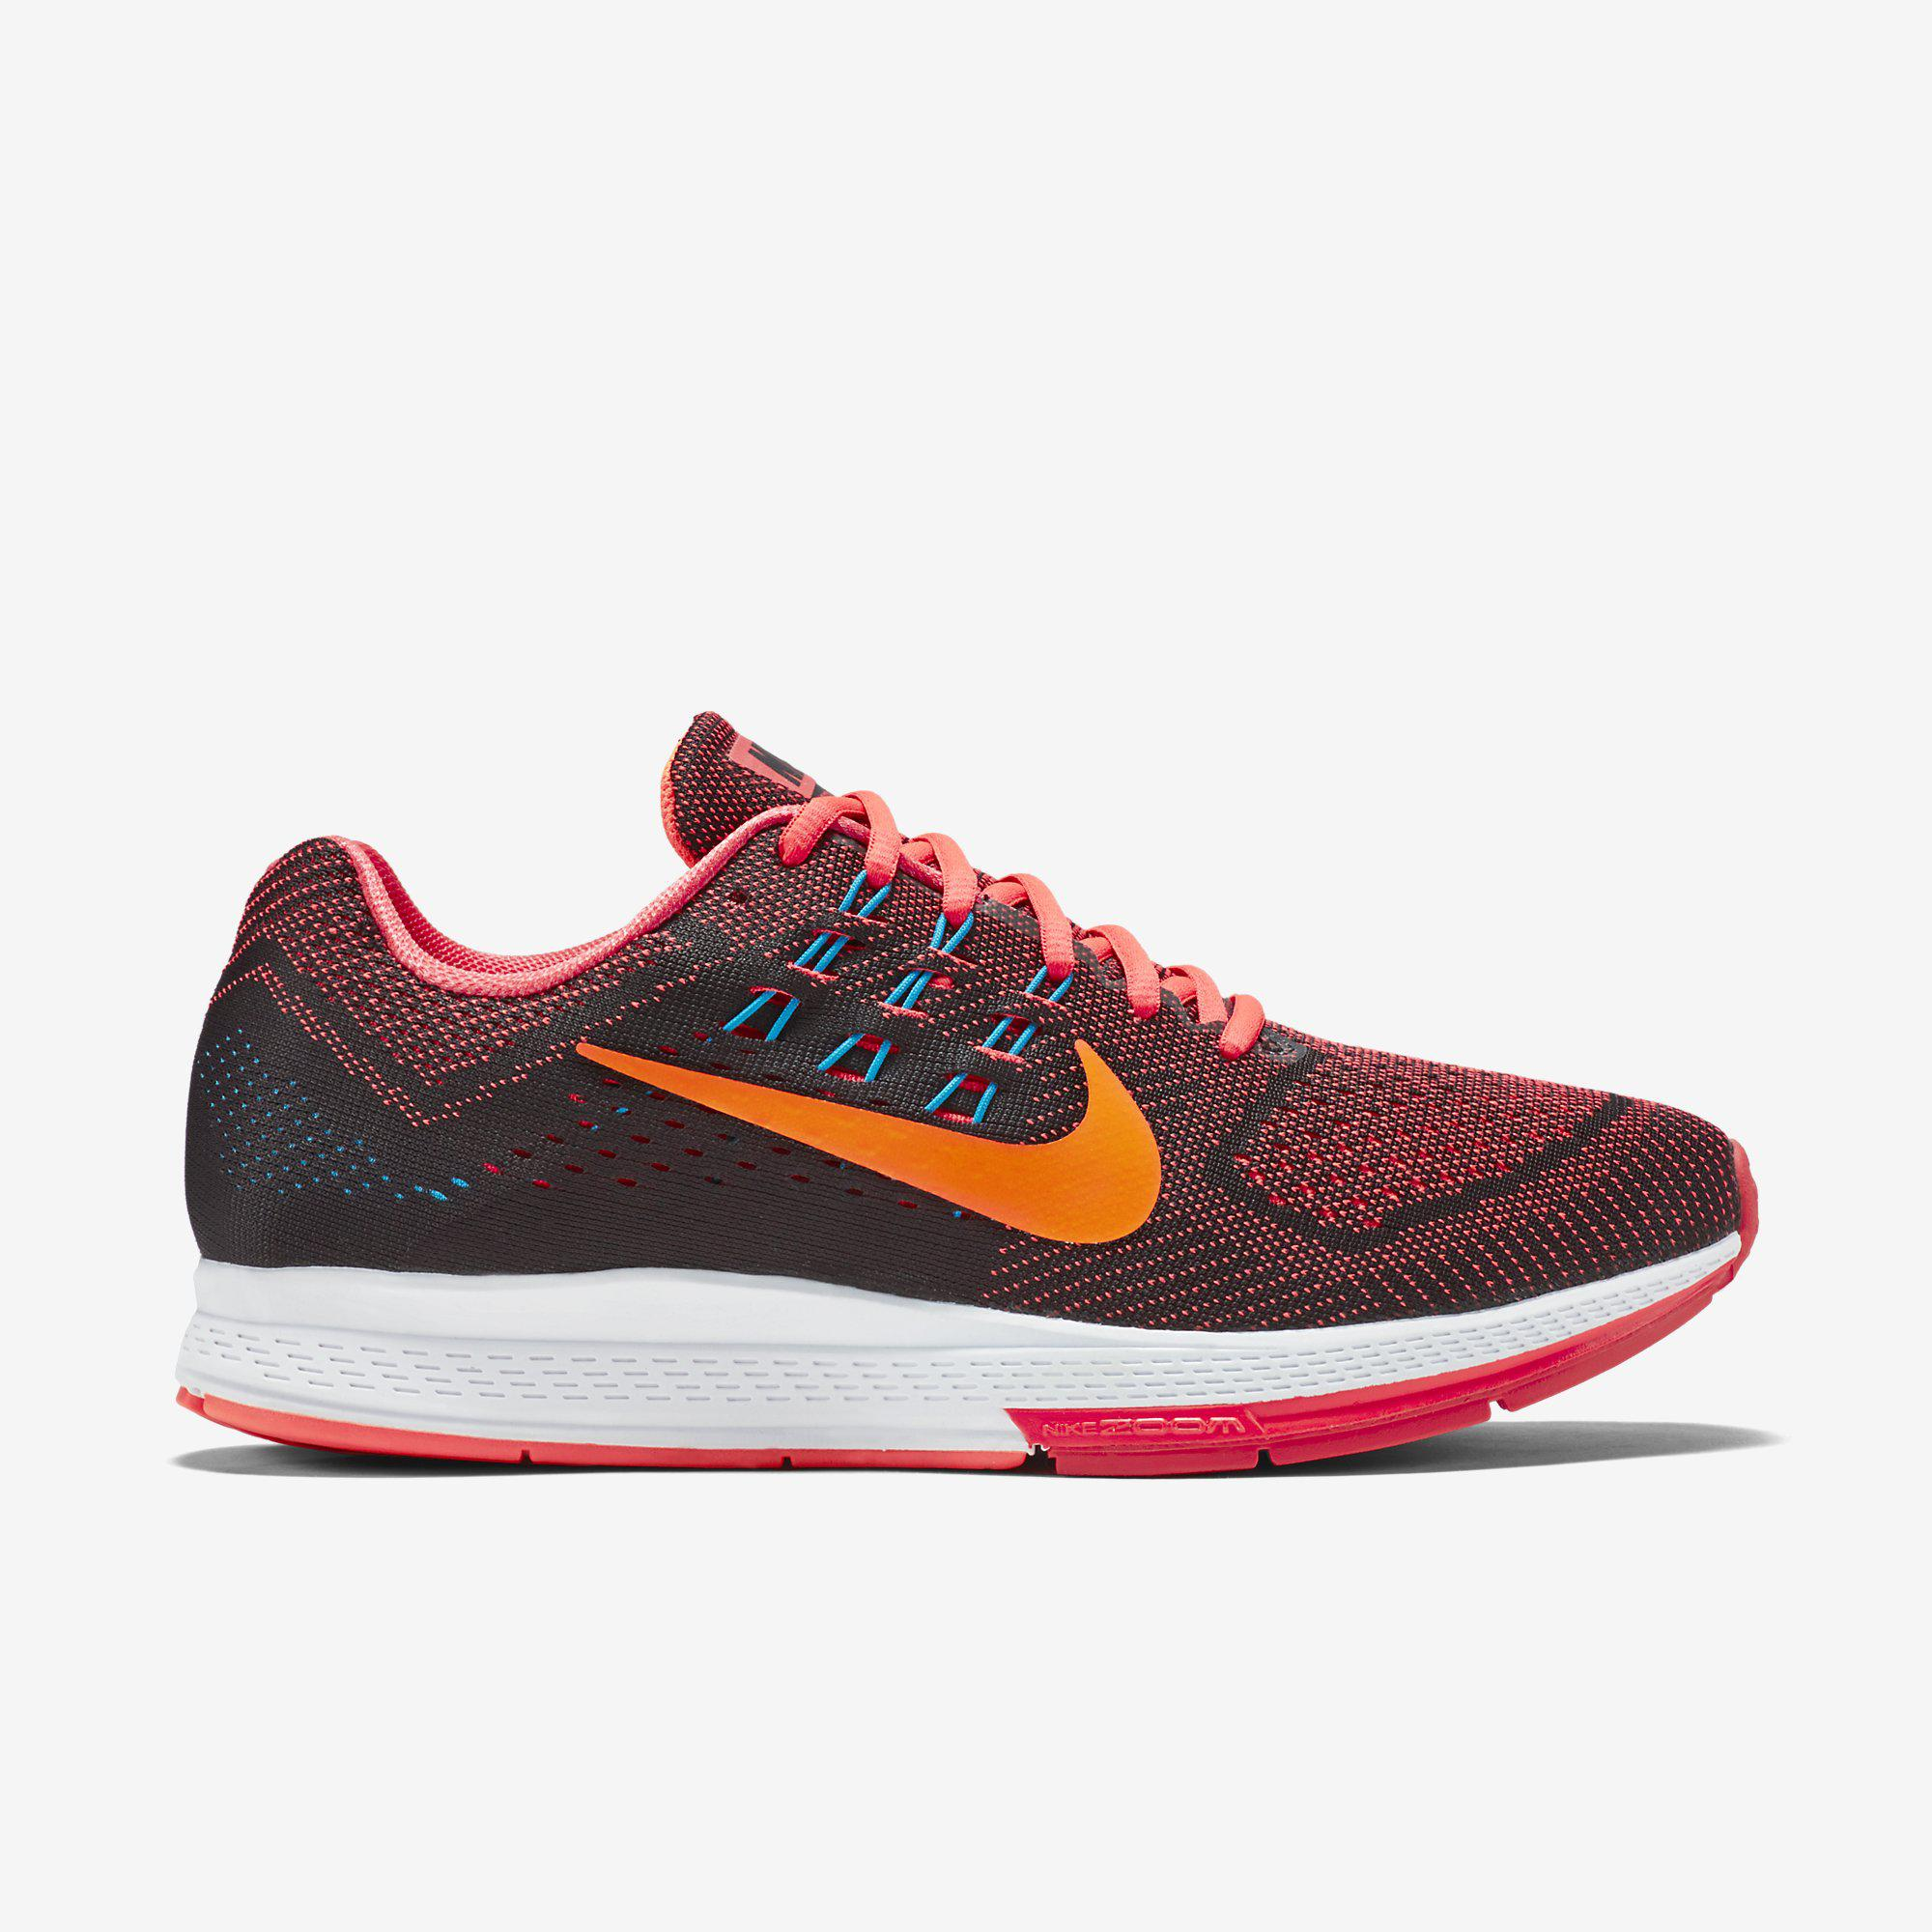 Nike Mens Air Zoom Structure 18 Running Shoes Bright CrimsonBlack